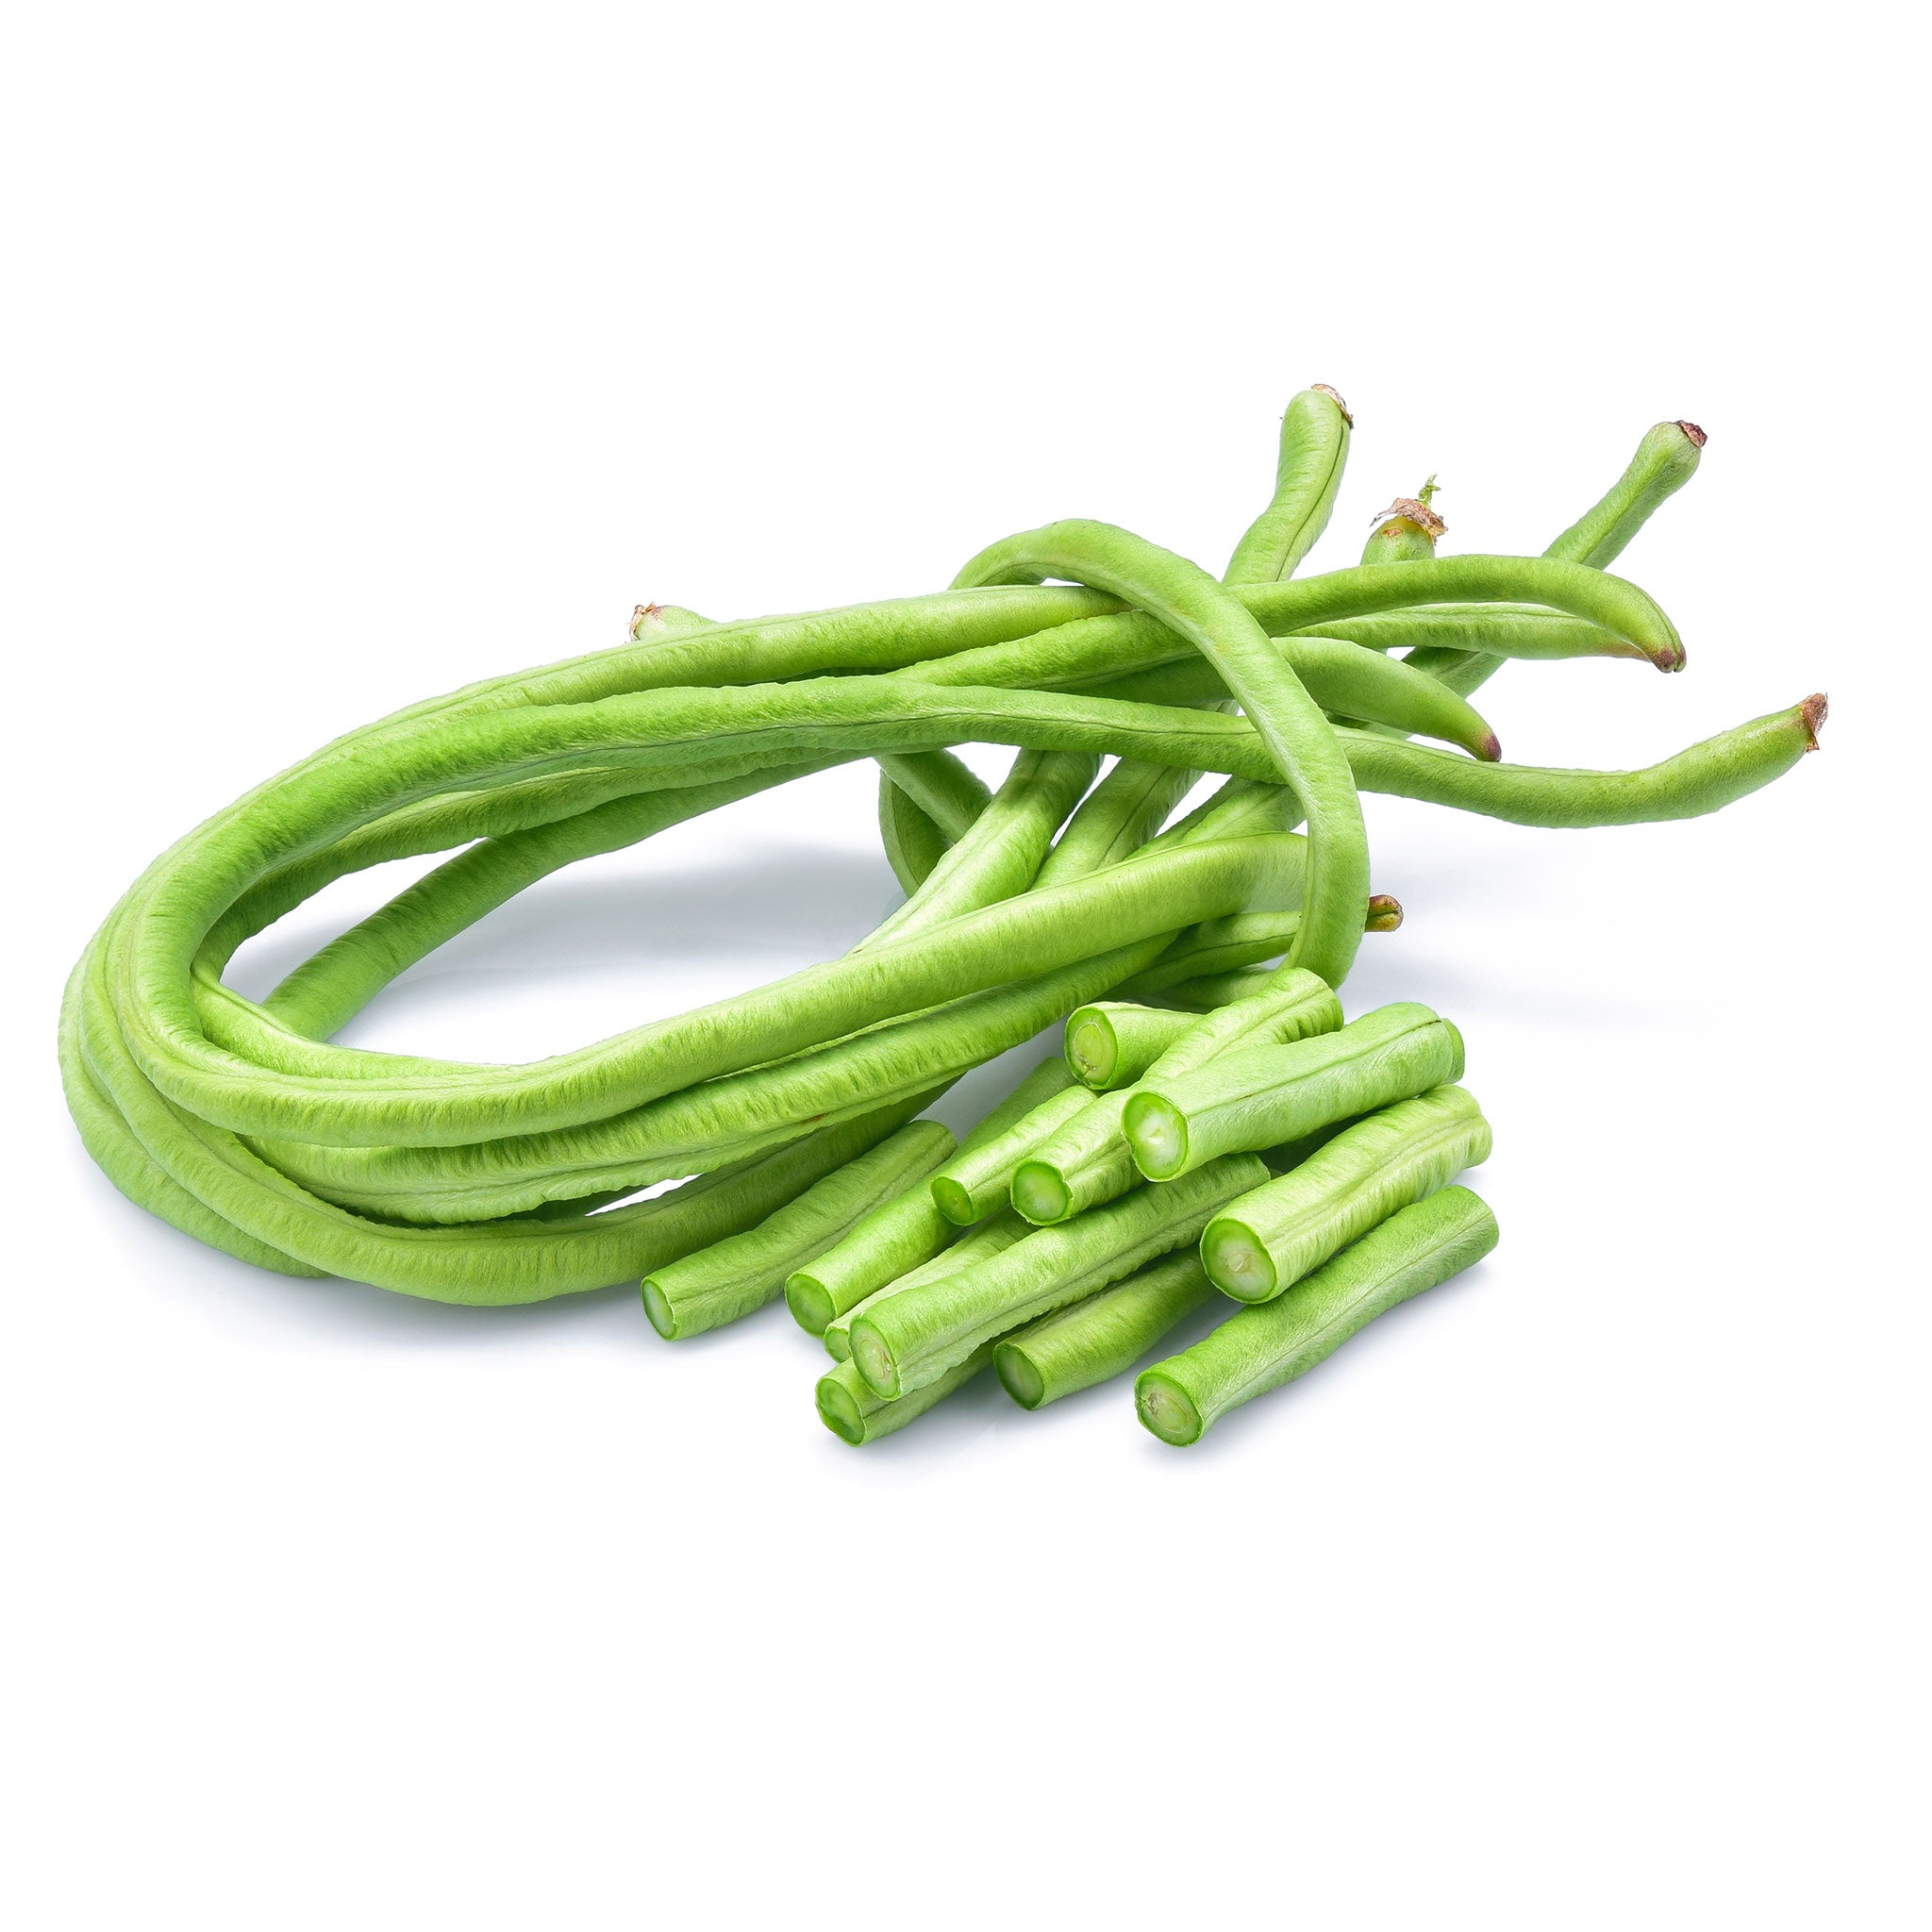 Thai string bean (yard / long bean)